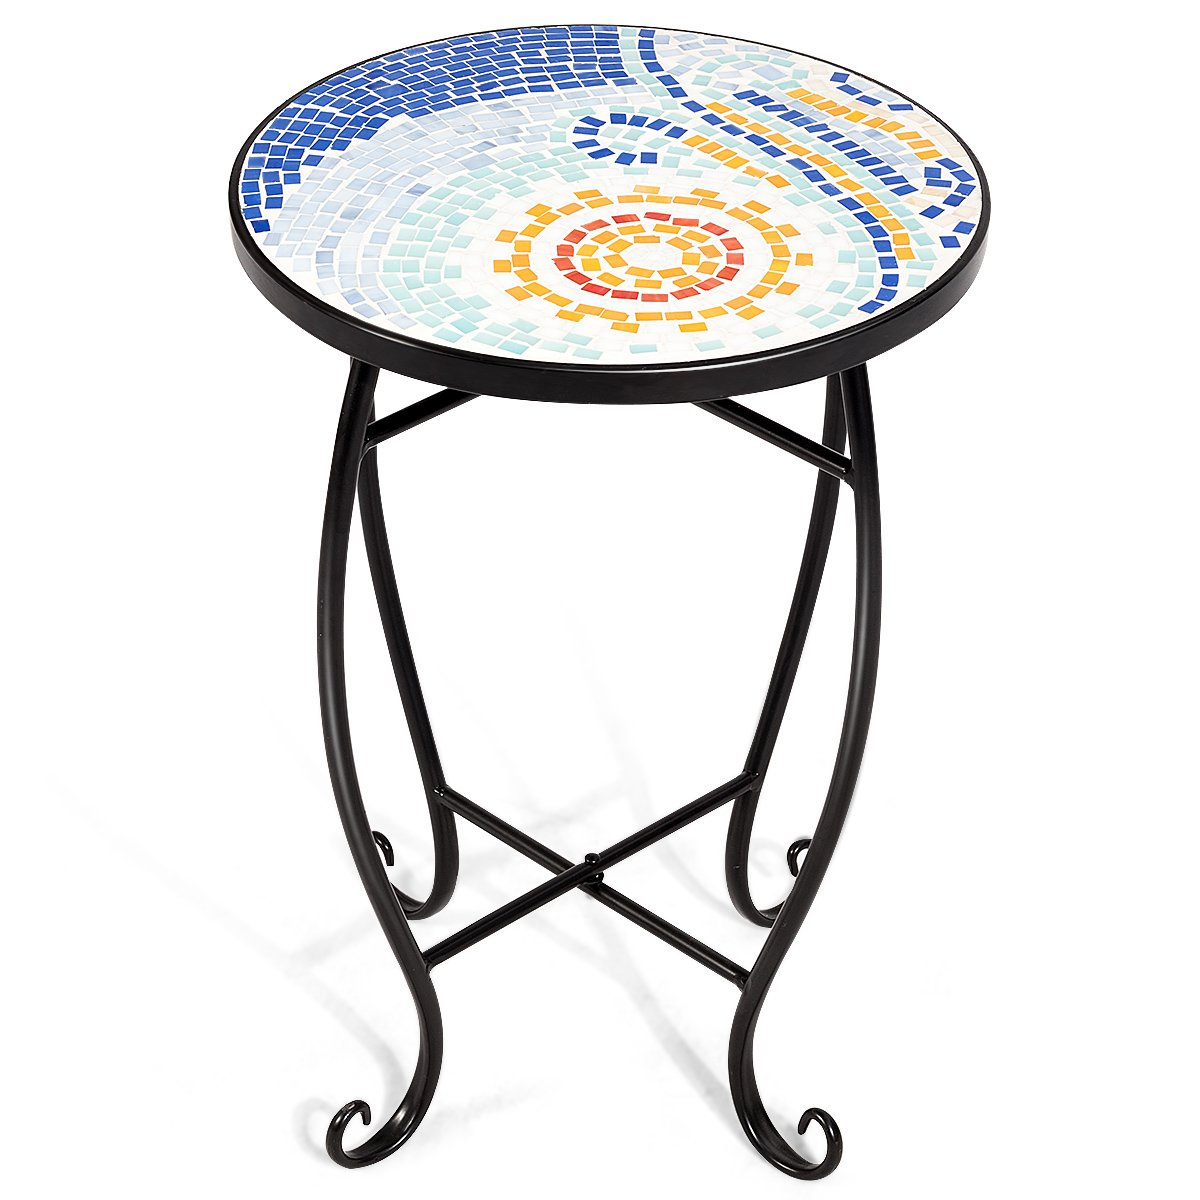 giantex mosaic round side accent table patio plant outdoor tables stand porch beach theme balcony back deck pool decor metal cobalt glass top indoor coffee end collapsible ikea